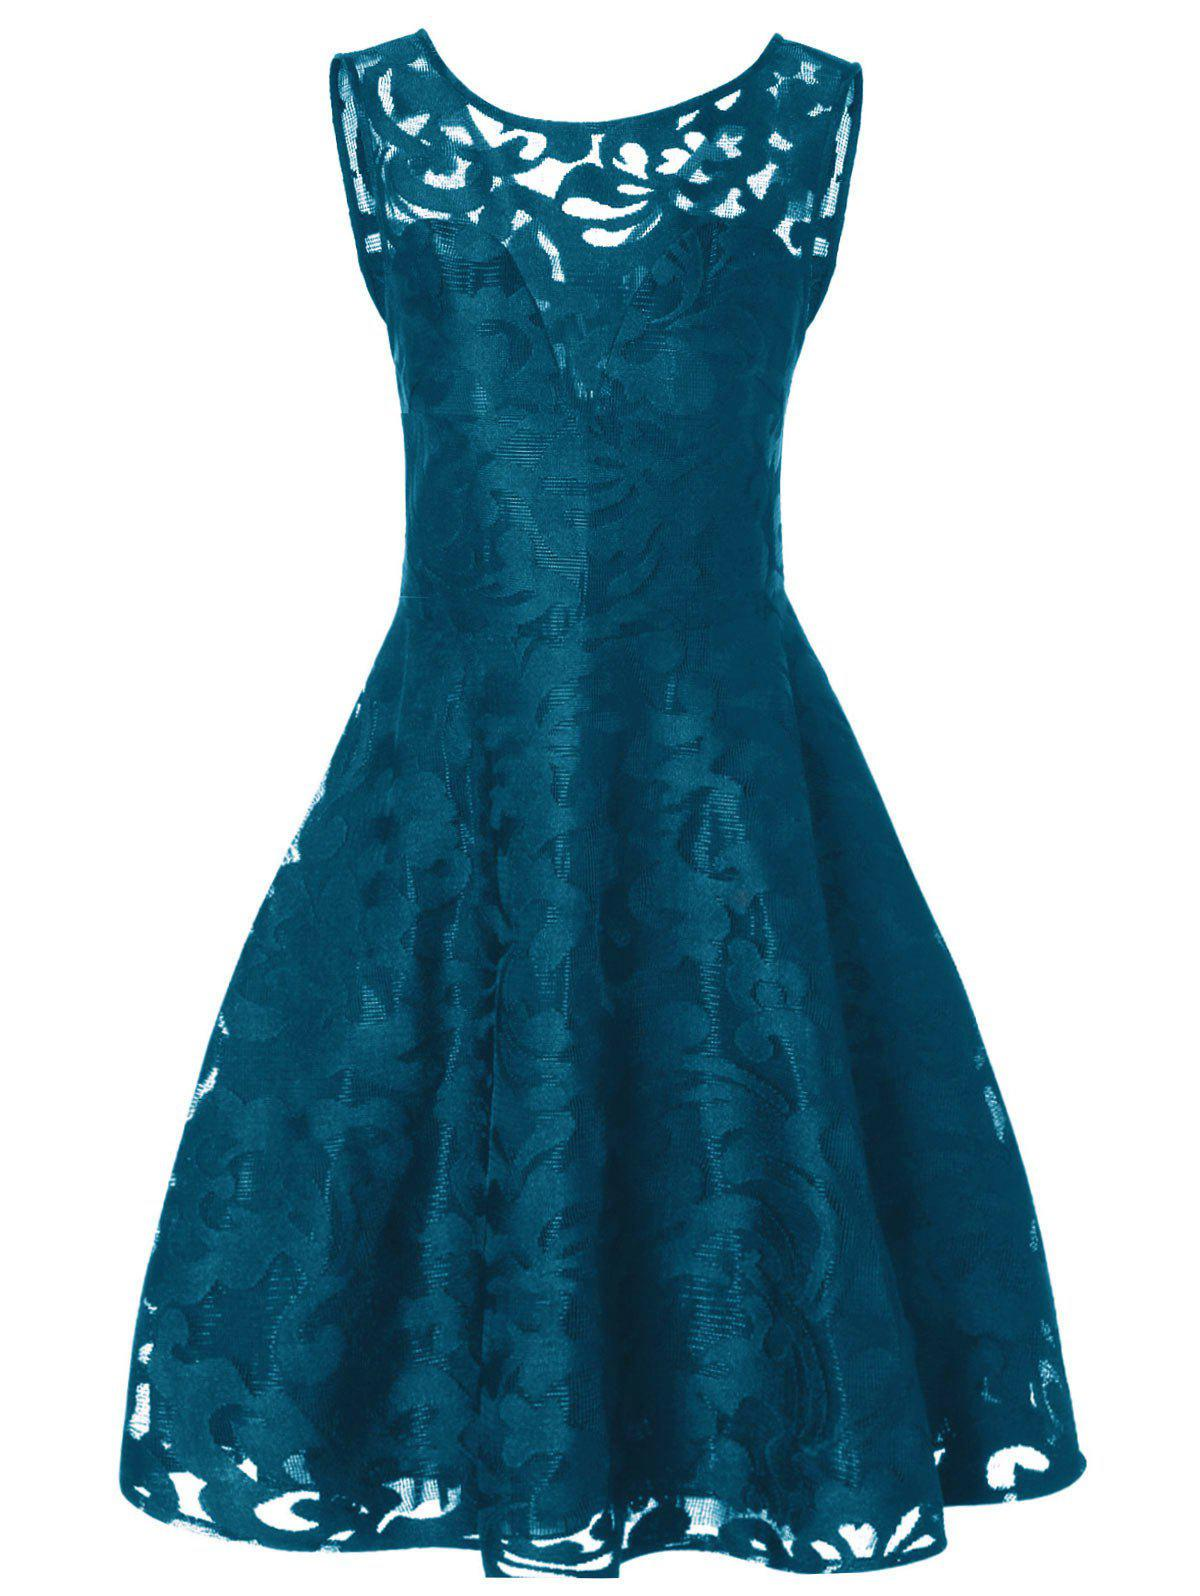 Lace Plus Size Holiday Short Cocktail DressWOMEN<br><br>Size: 5XL; Color: PEACOCK BLUE; Style: Vintage; Material: Polyester; Silhouette: A-Line; Dresses Length: Mid-Calf; Neckline: Round Collar; Sleeve Length: Sleeveless; Pattern Type: Solid; With Belt: No; Season: Fall; Weight: 0.2570kg; Package Contents: 1 x Dress;